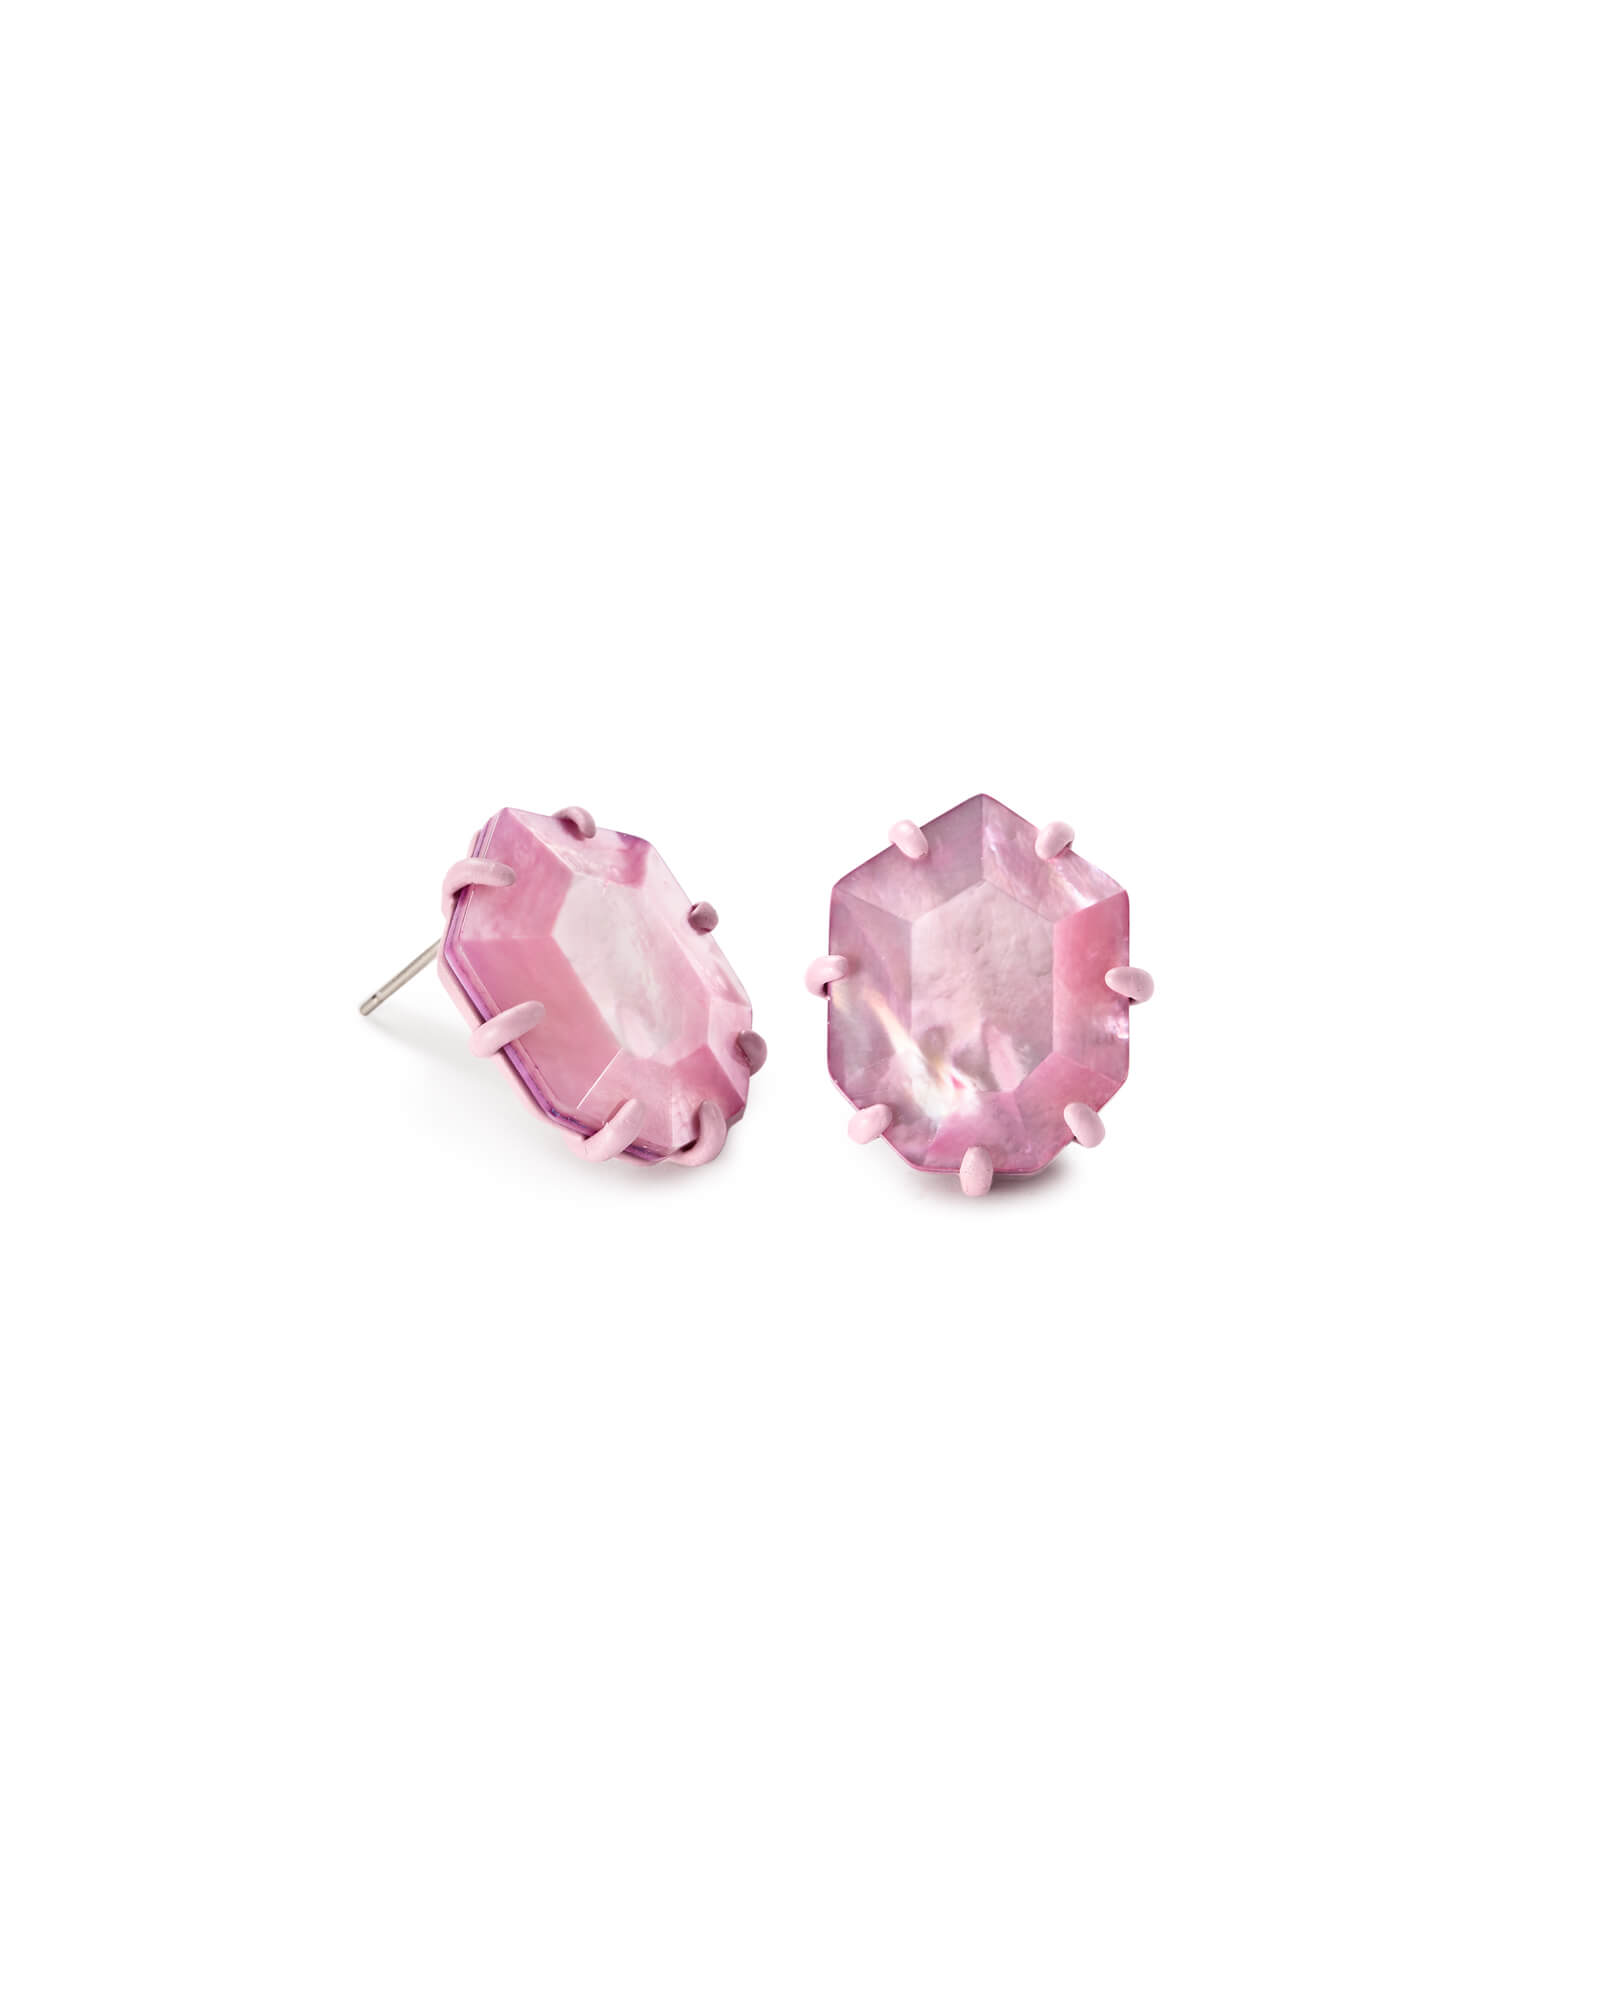 Morgan Matte Stud Earrings in Lilac Mother of Pearl